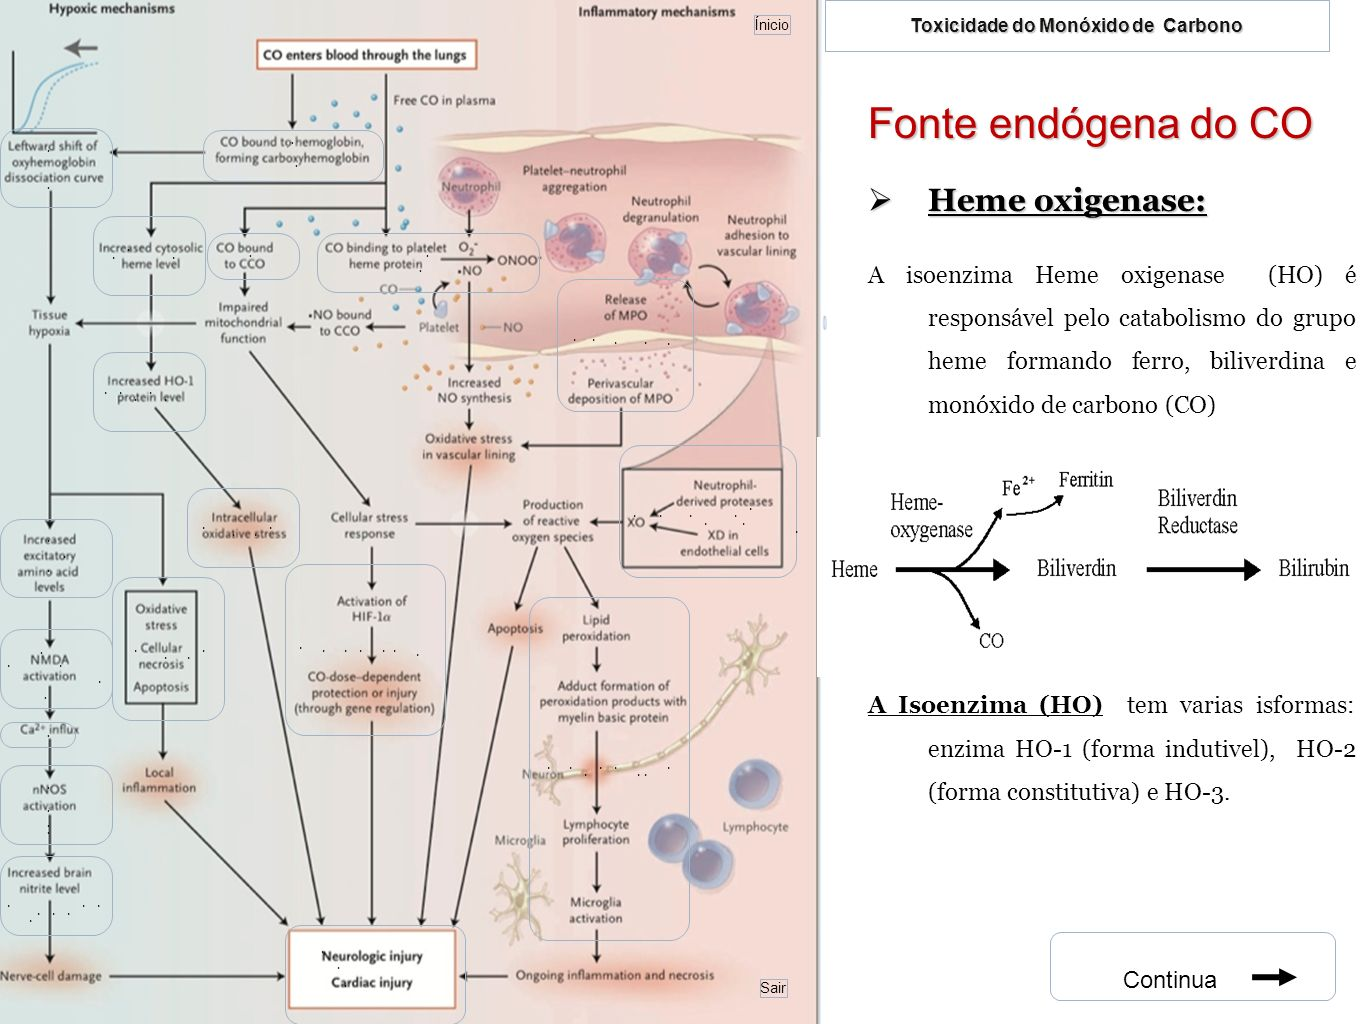 Fonte endógena do CO Heme oxigenase: